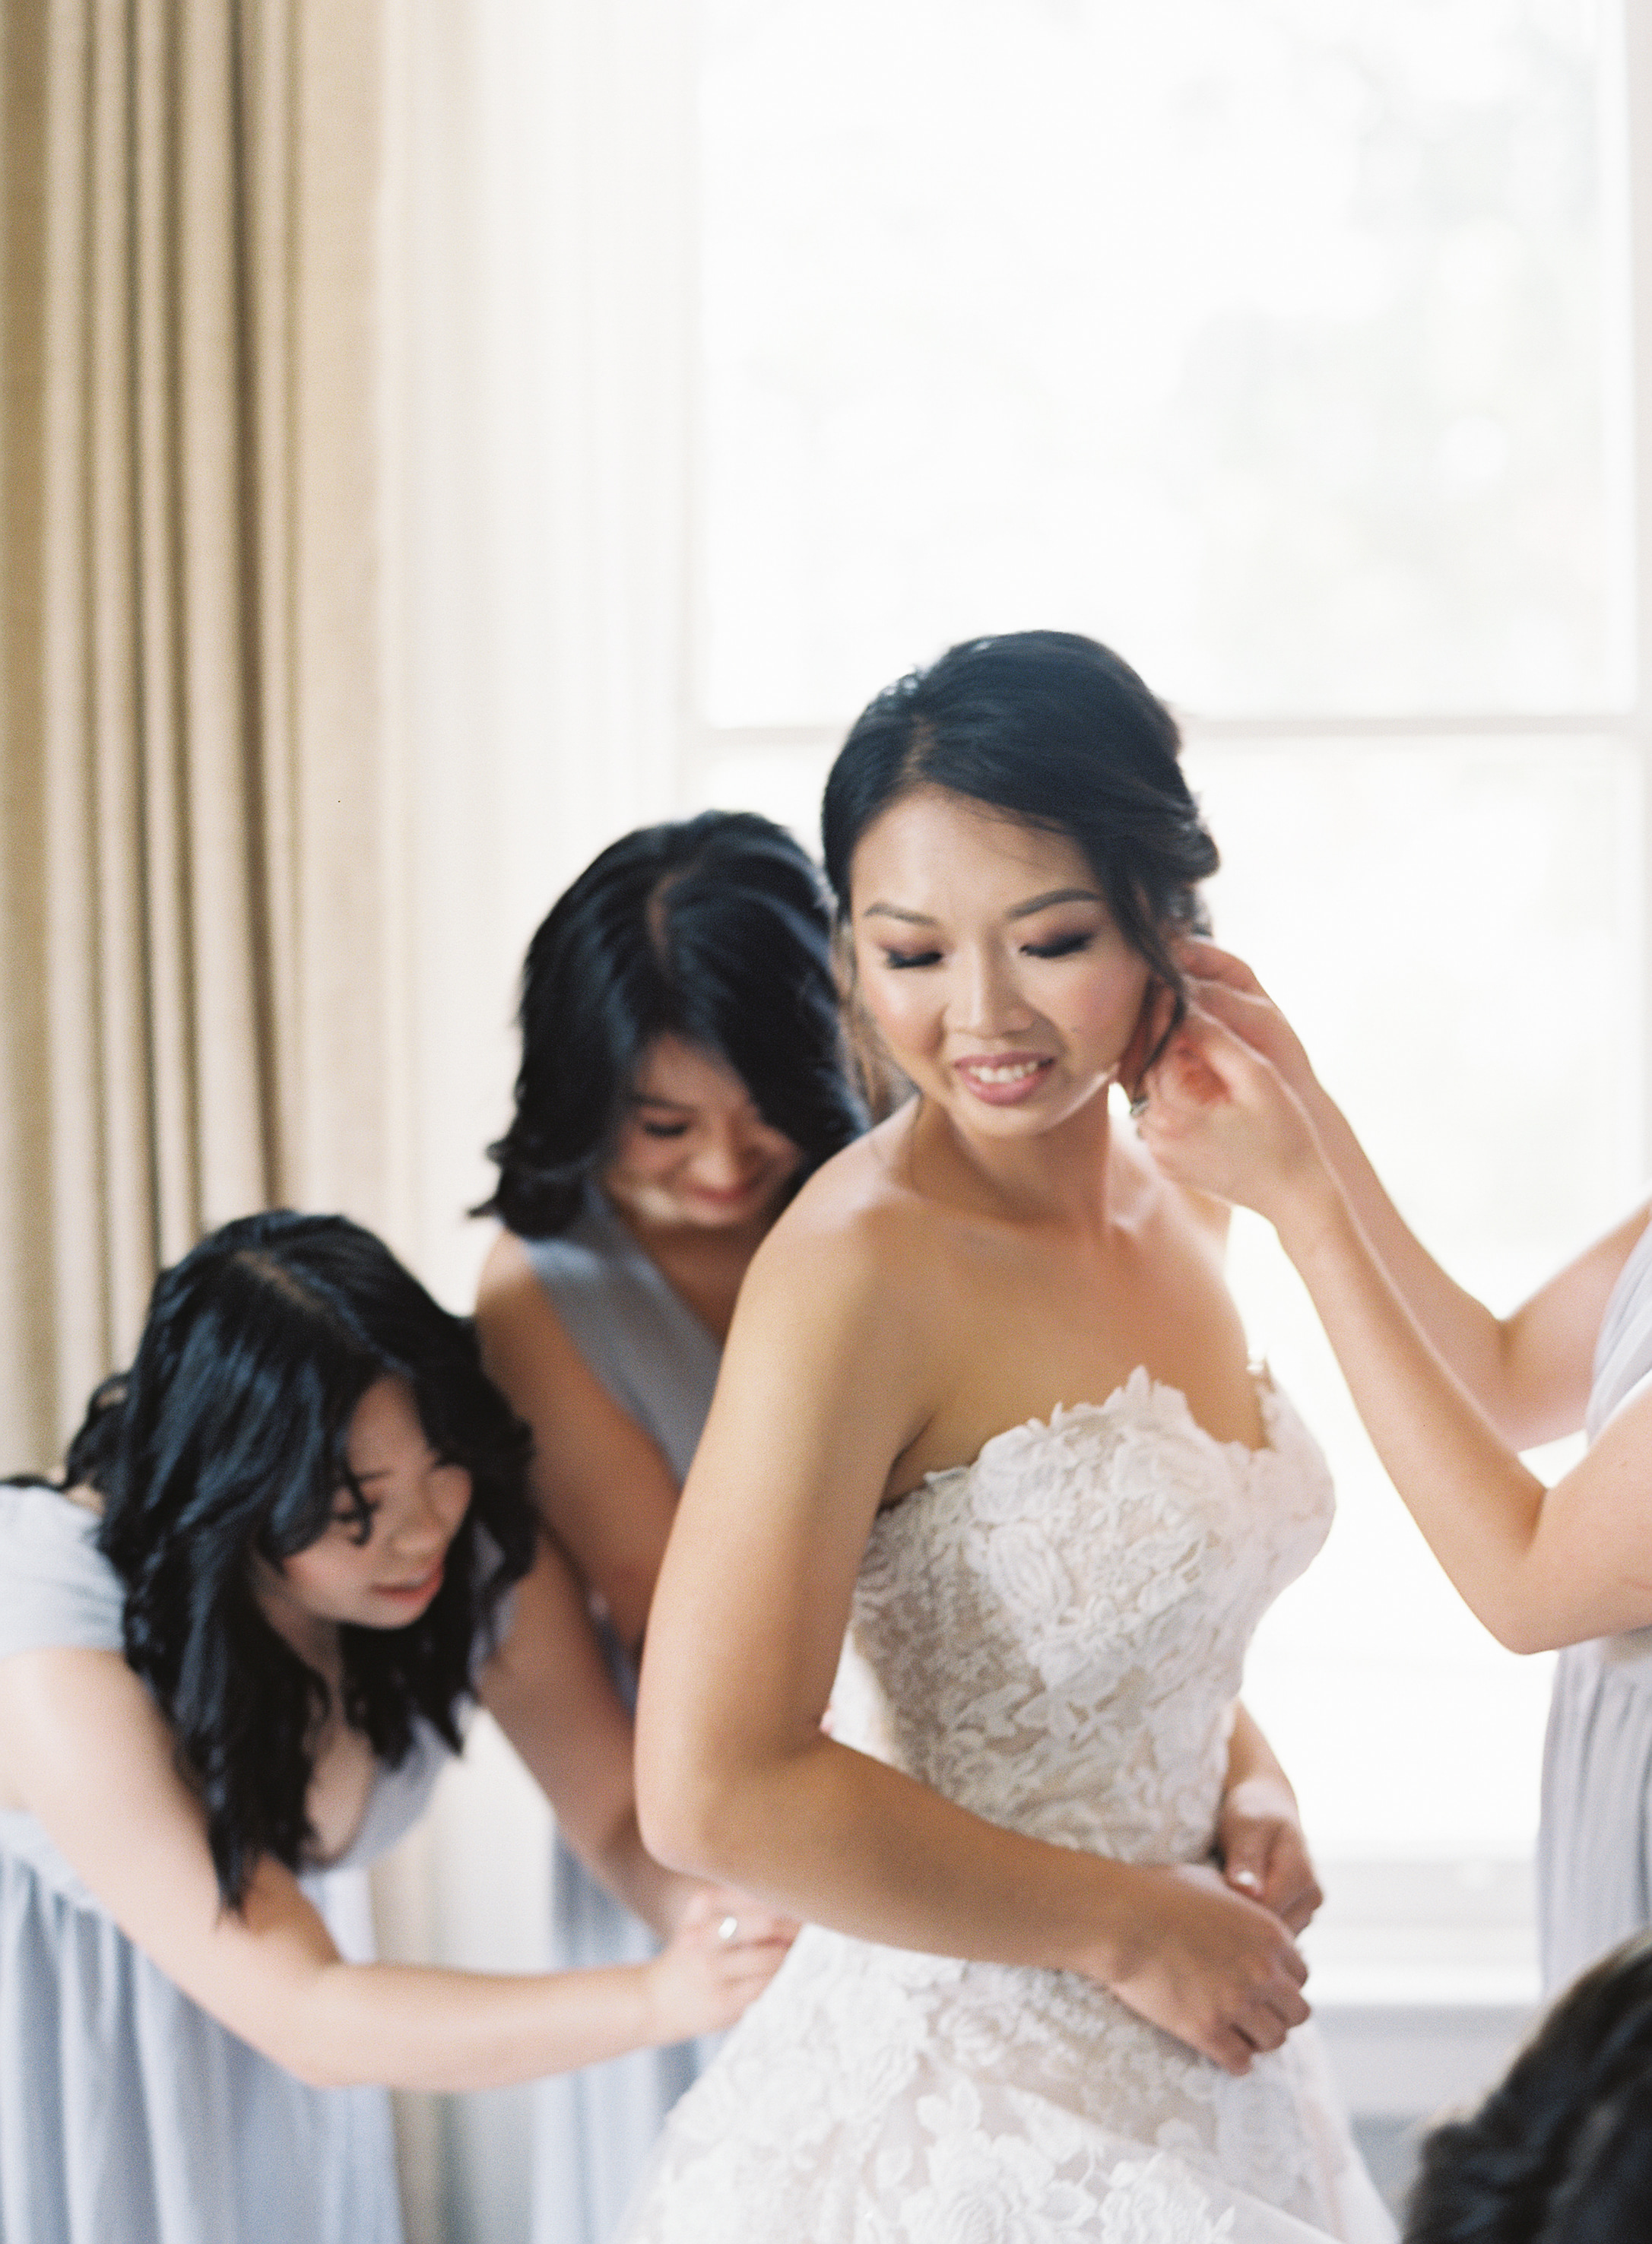 NathalieCheng_SNWedding_GettingReady_044.jpg